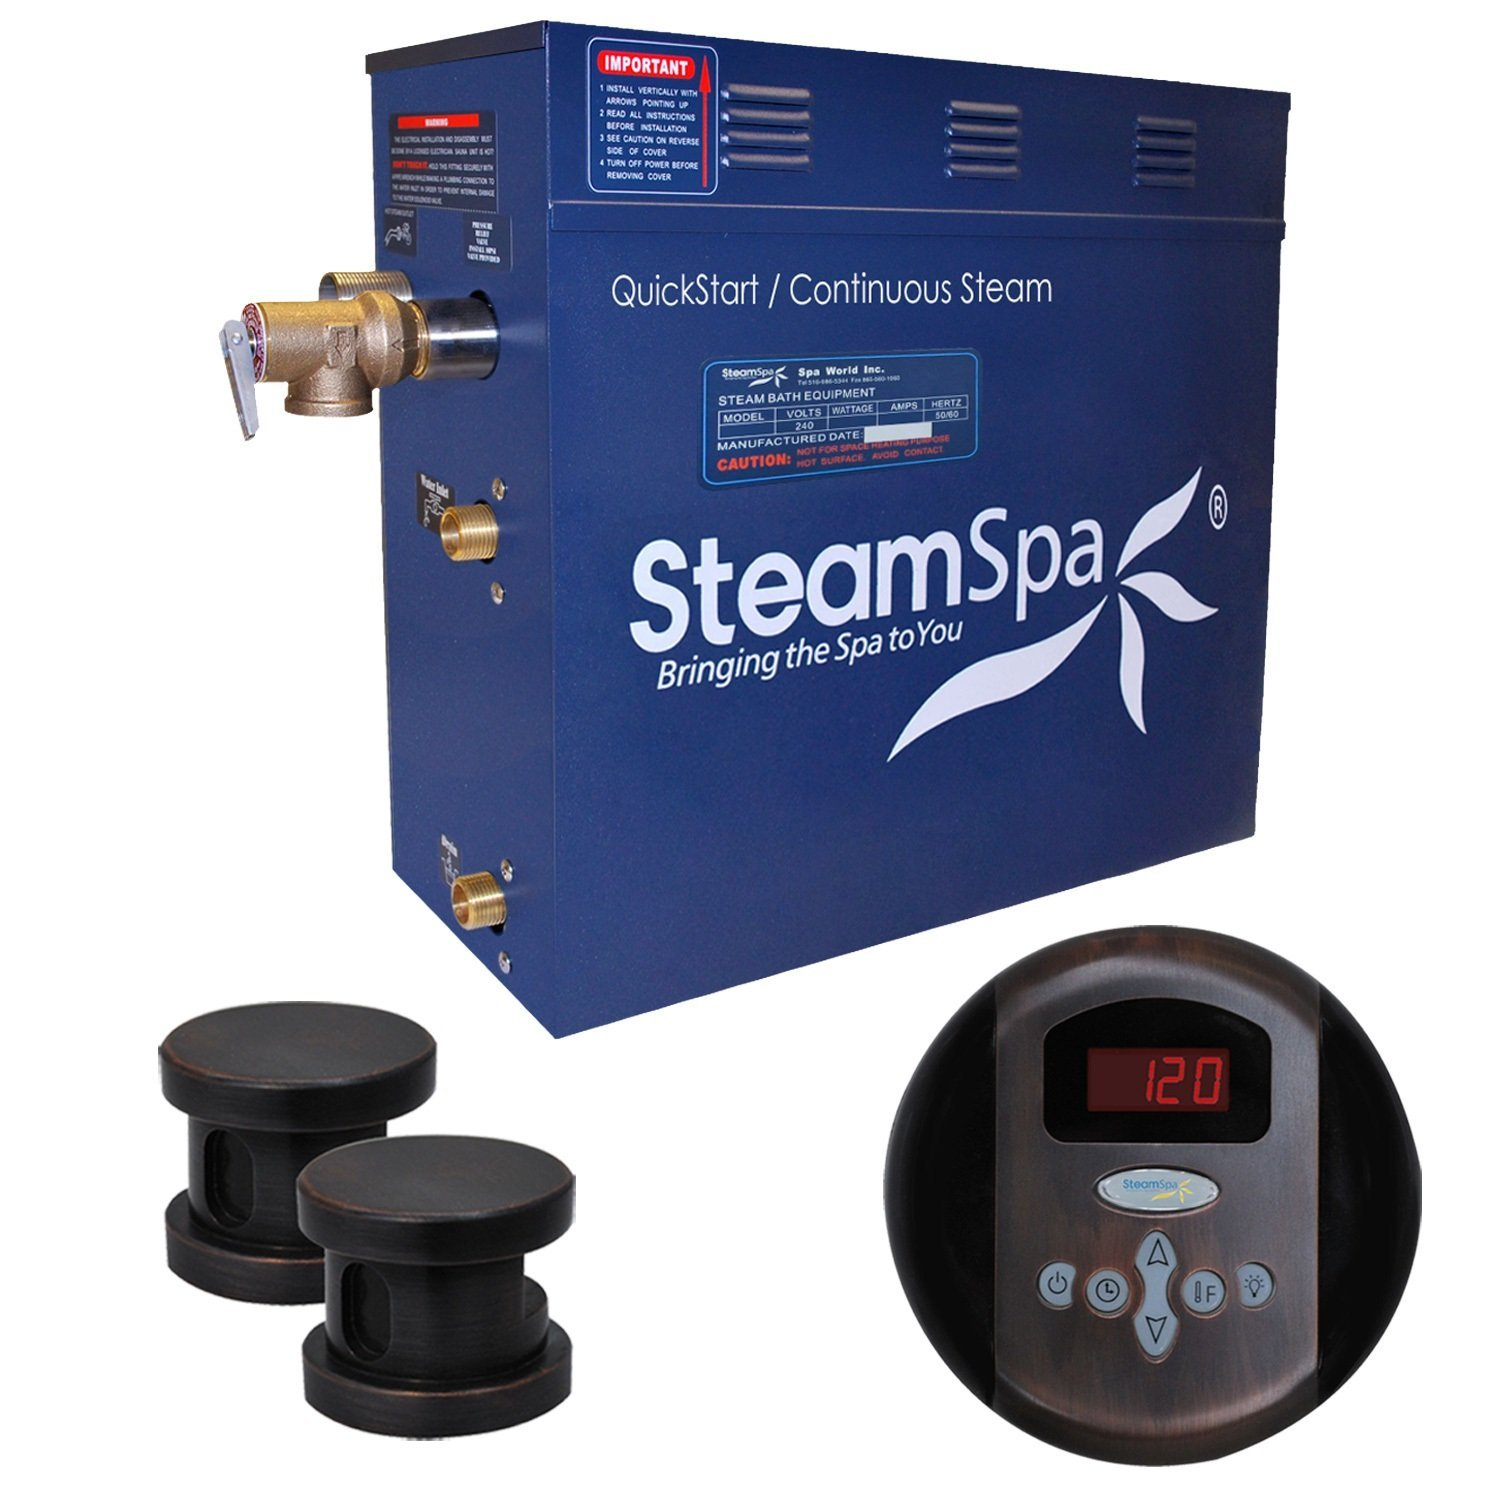 Steam Spa OA1050OB Oasis 10.5 KW Quick Start Acu-Steam Bath Generator Package, Oil Rubbed Bronze